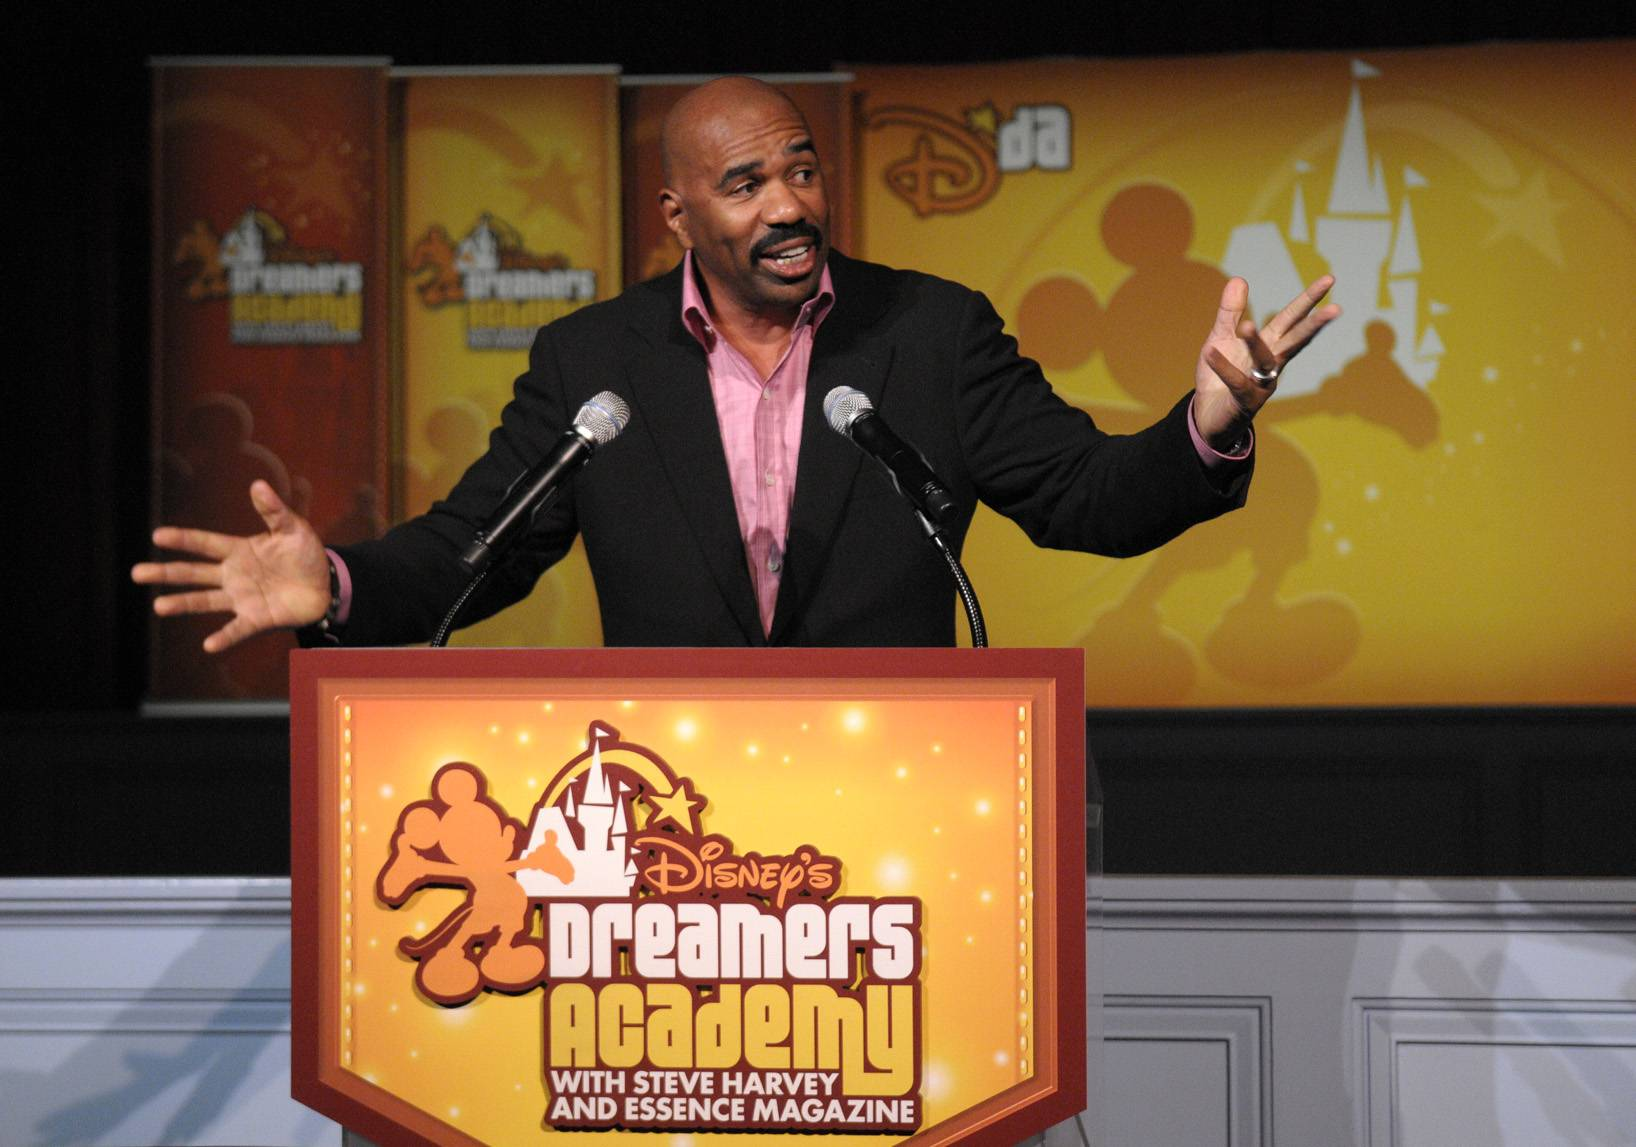 Steve Harvey, Radio Host and Comedian - ?Don?t get consumed with your passion because your passion ain?t going to do it for you. What will do it for you in your life is your gift. You gift is the thing that you do the absolute best with the least amount of effort.?(Photo: Phelan Ebenhack/Disney).